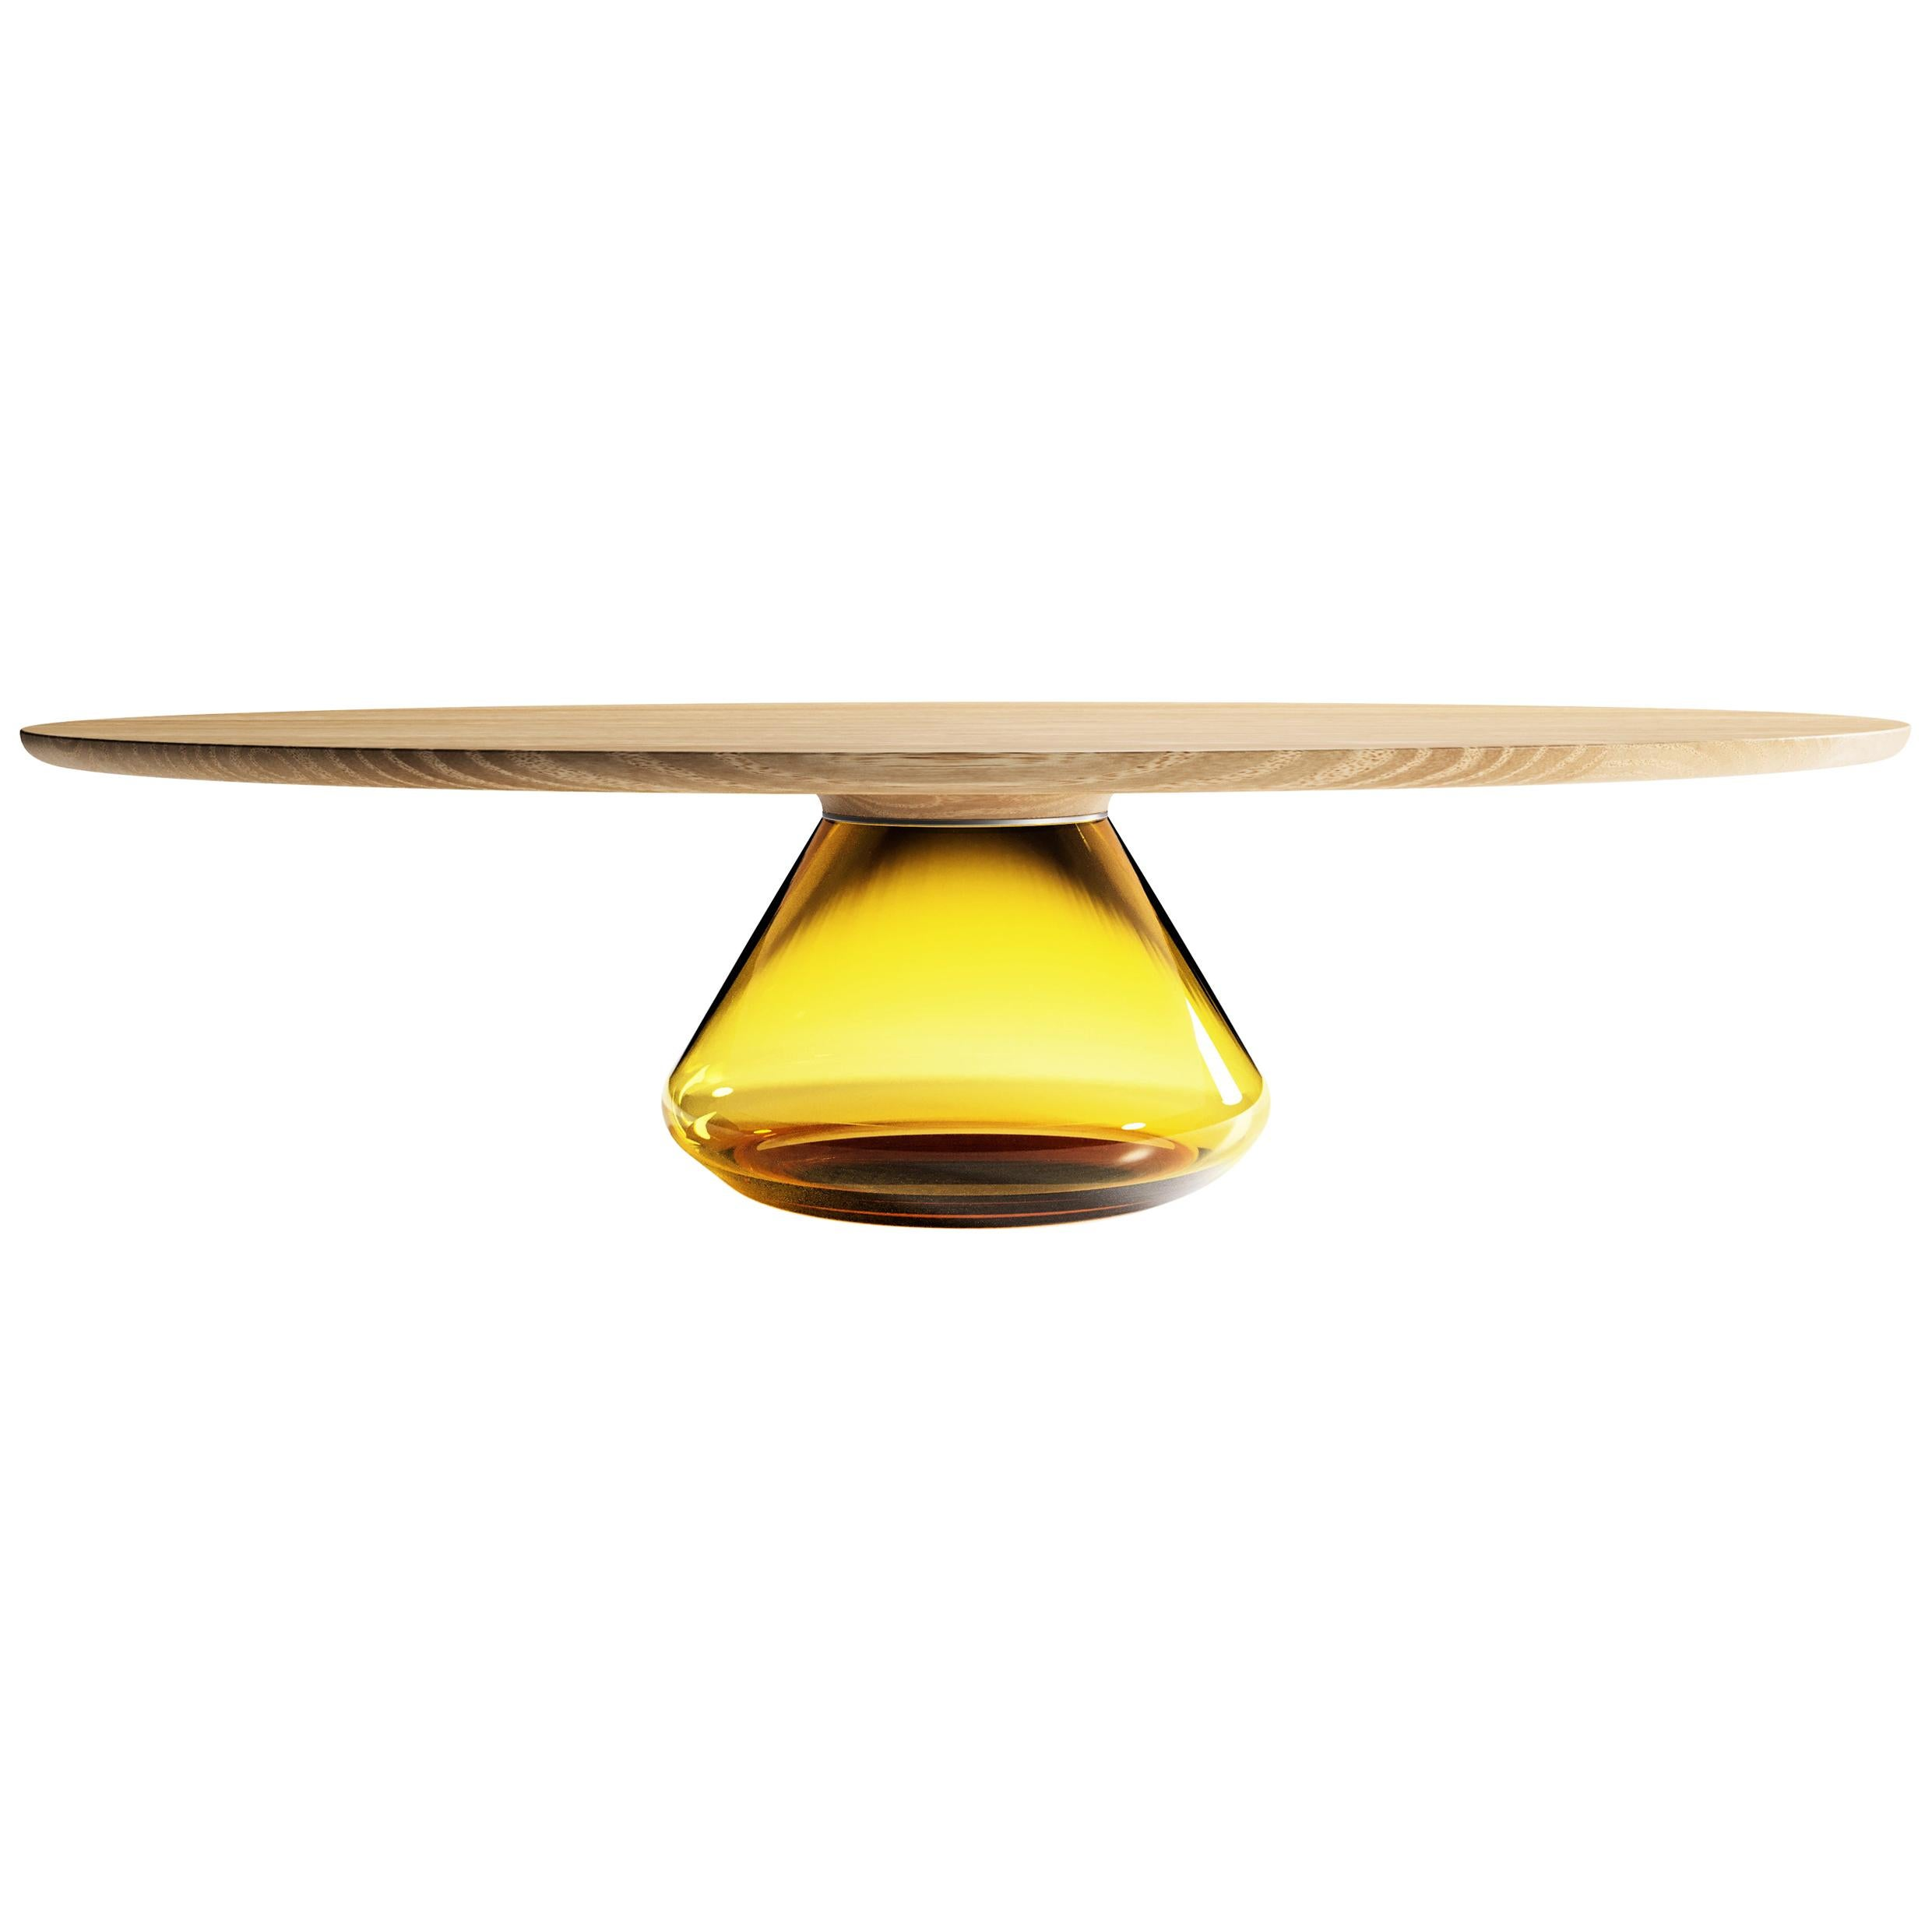 The Amber Eclispse I, Limited Edition Coffee Table by Grzegorz Majka